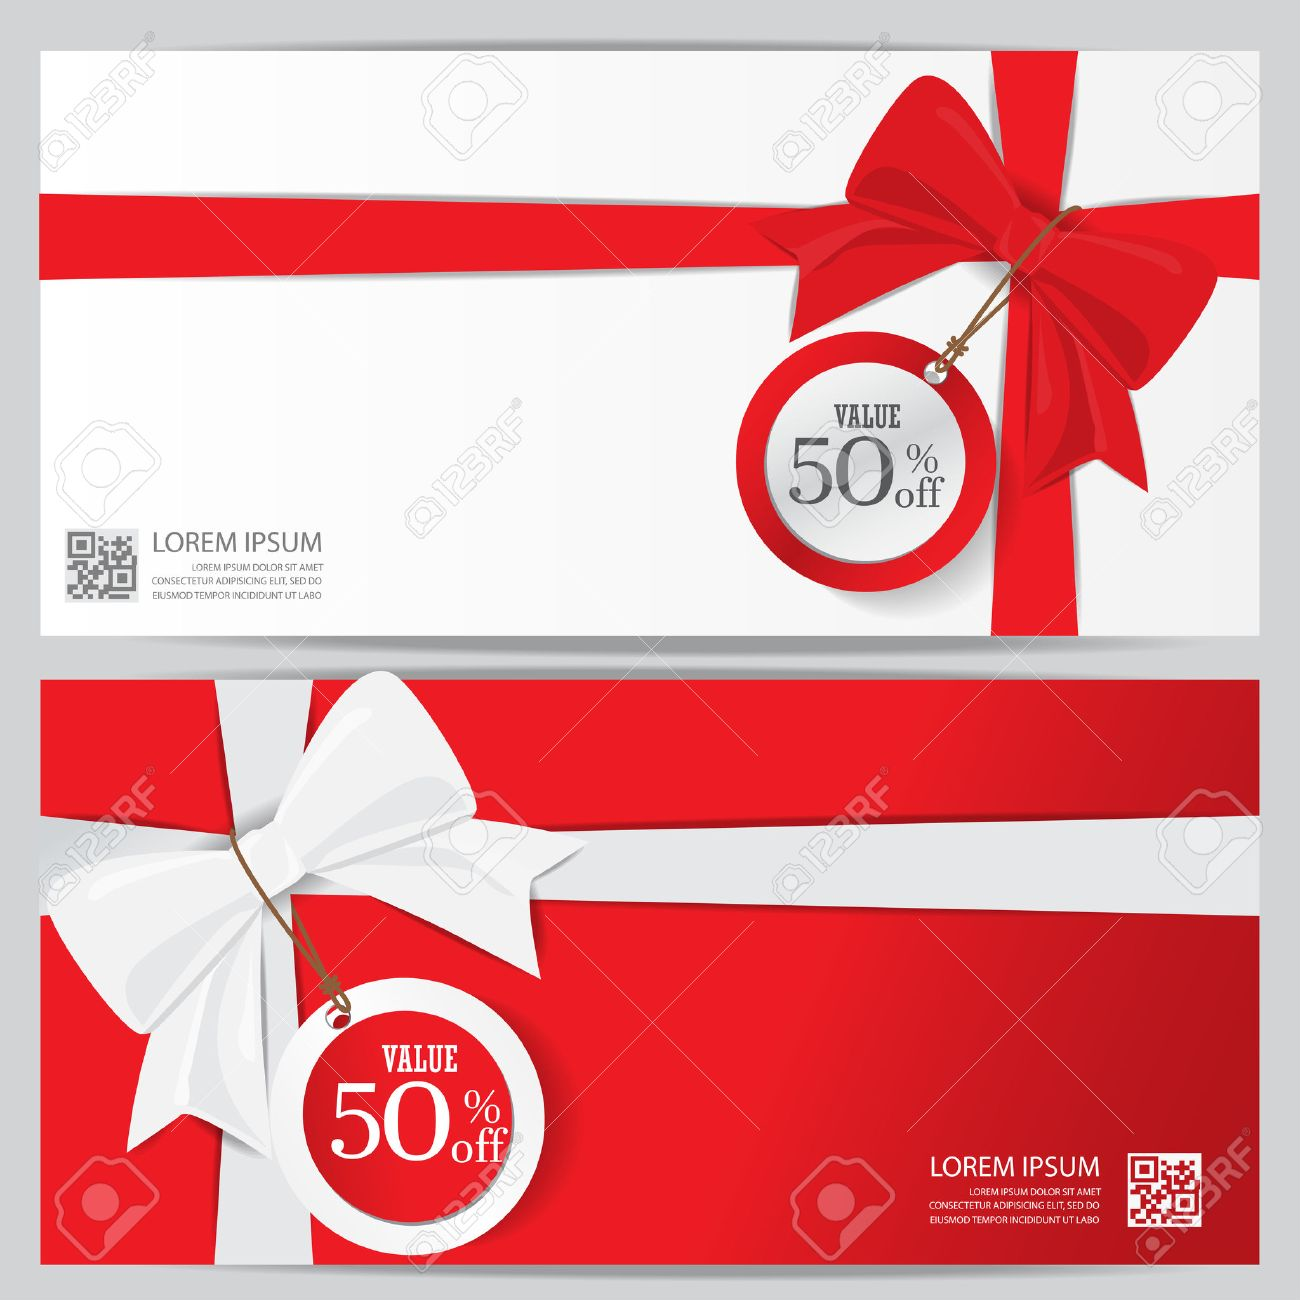 christmas paper stock photos images royalty christmas paper christmas paper christmas holiday and new year gift voucher certificate coupon template can be